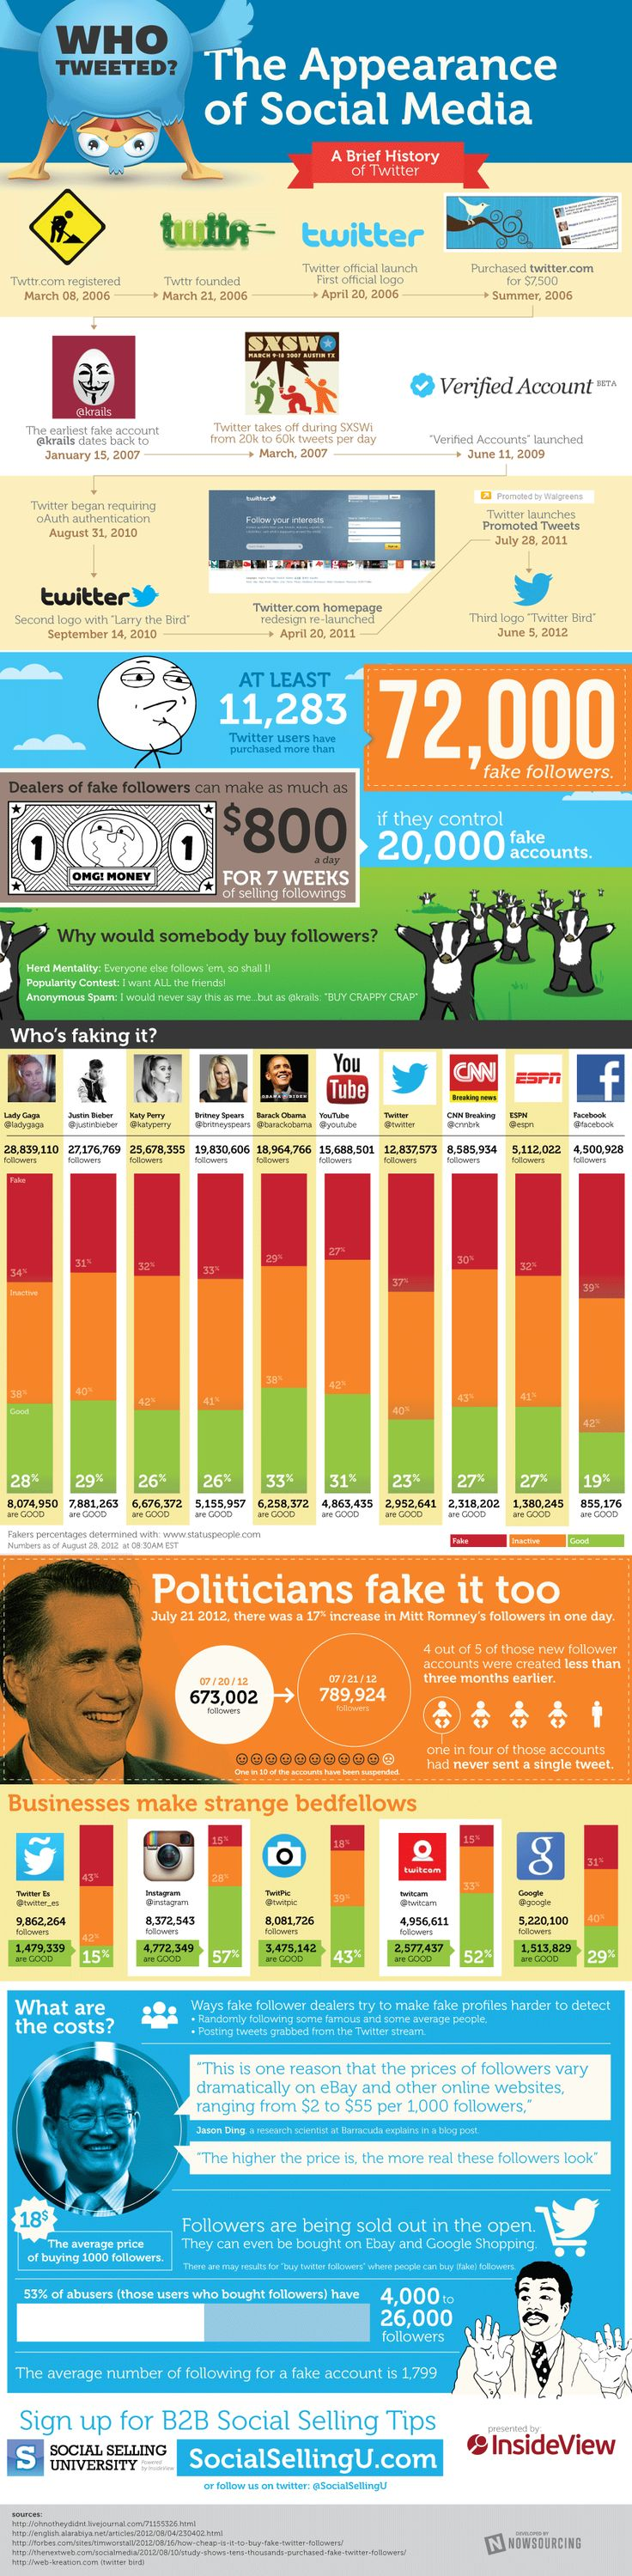 How Do You Sort Out Fake Followers From Real Ones on Twitter? #INFOGRAPHIC